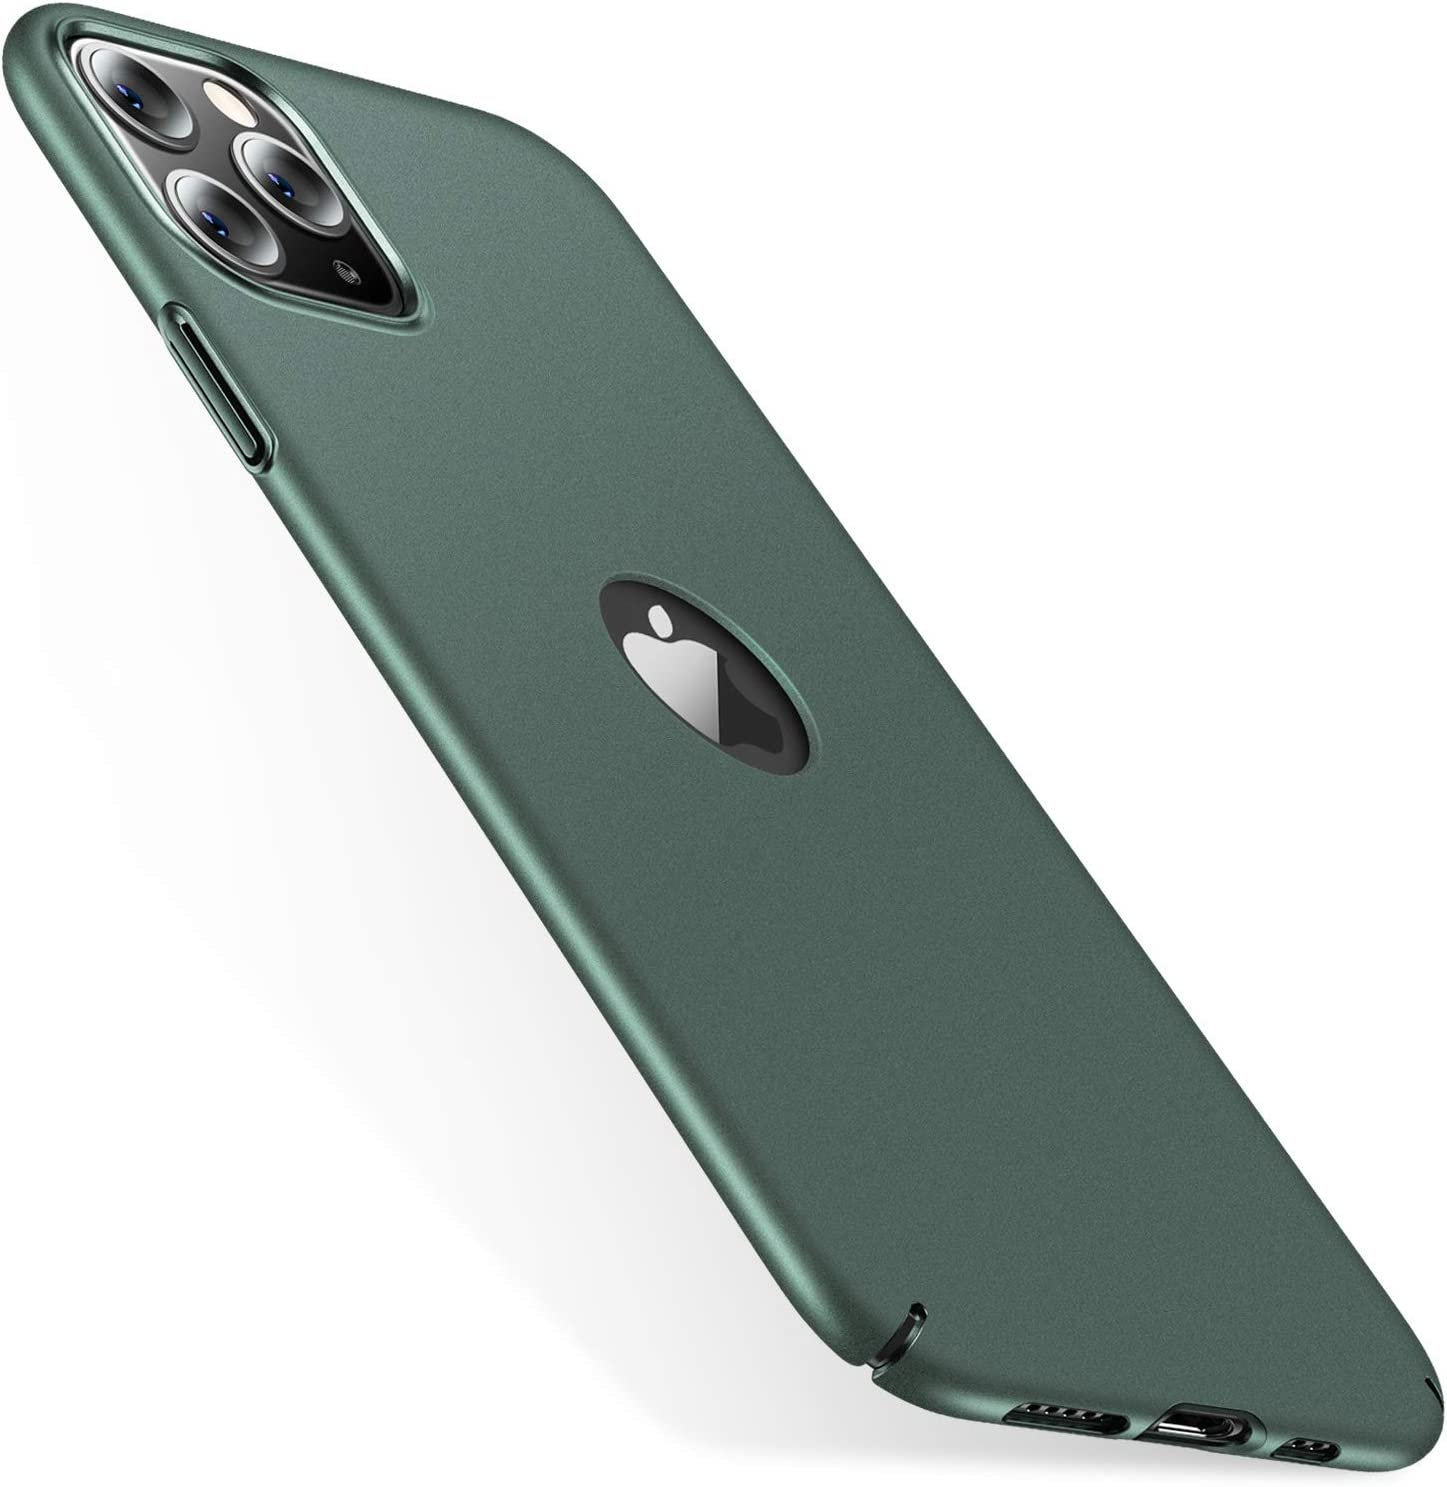 CASEKOO Slim Fit Compatible with iPhone 11 Pro Max Case, [Logo Visible] Ultra Thin Hard Plastic Phone Cases with Matte Finish, Anti-Fingerprint Cover for iPhone 11 Pro Max 6.5-inch 2019 Midnight Green